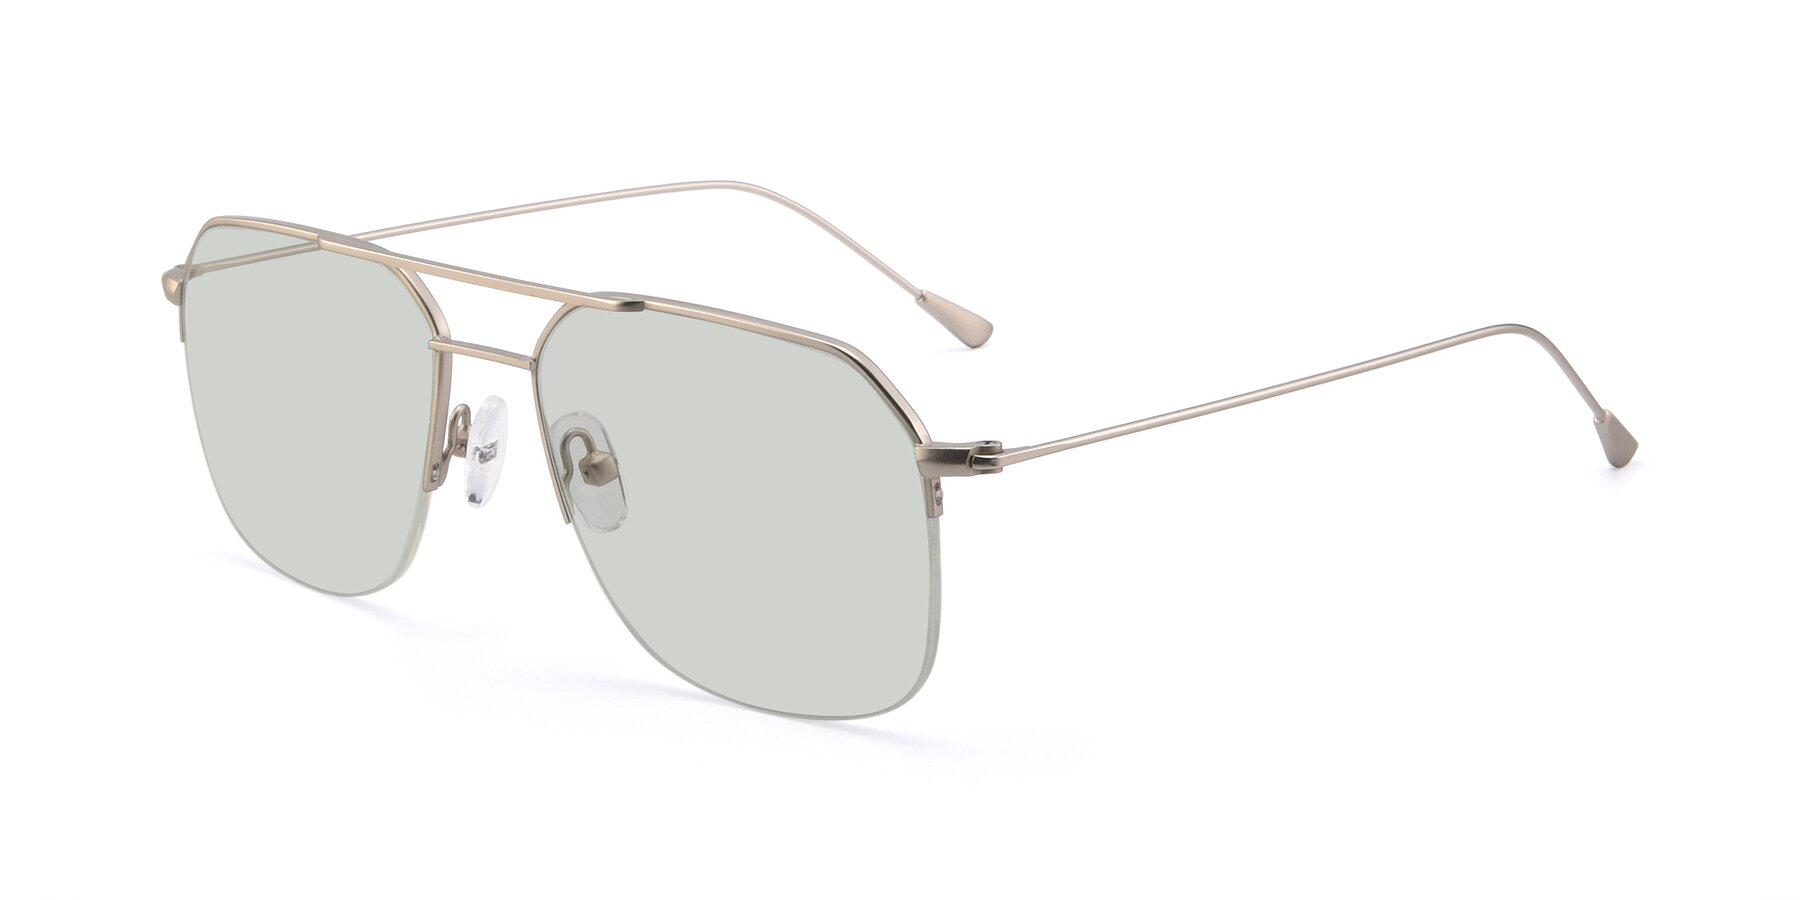 Angle of 9434 in Silver with Light Green Tinted Lenses